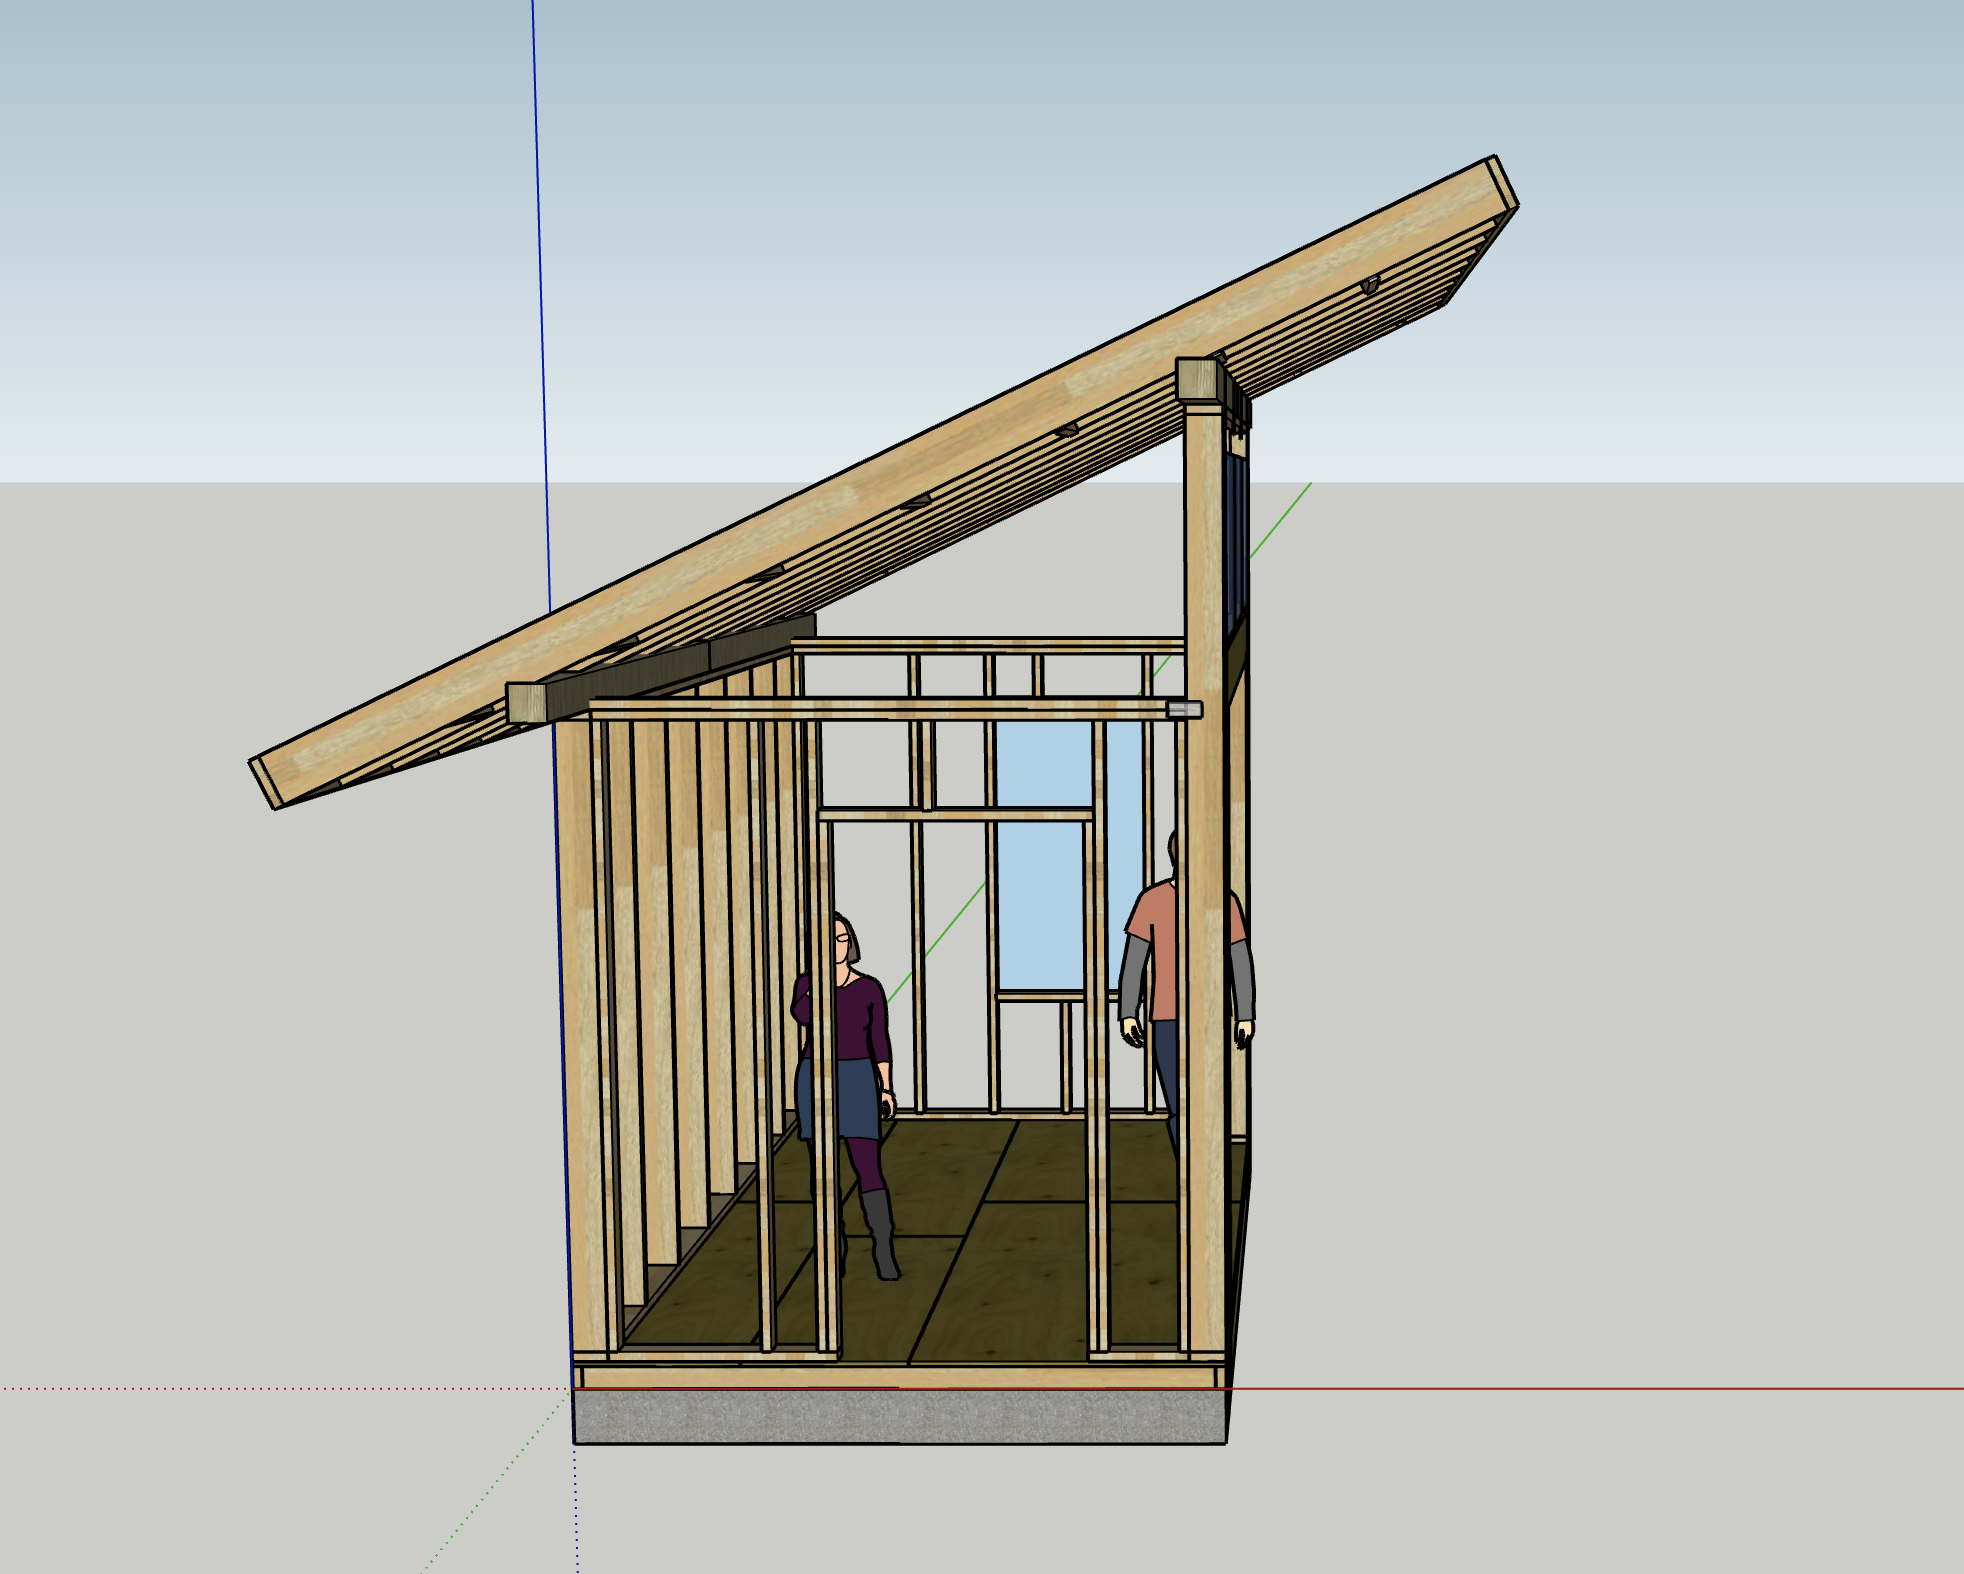 Shed / workshop framing design--is it too ambitious?-screen-shot-2020-04-25-3.33.36-pm.png